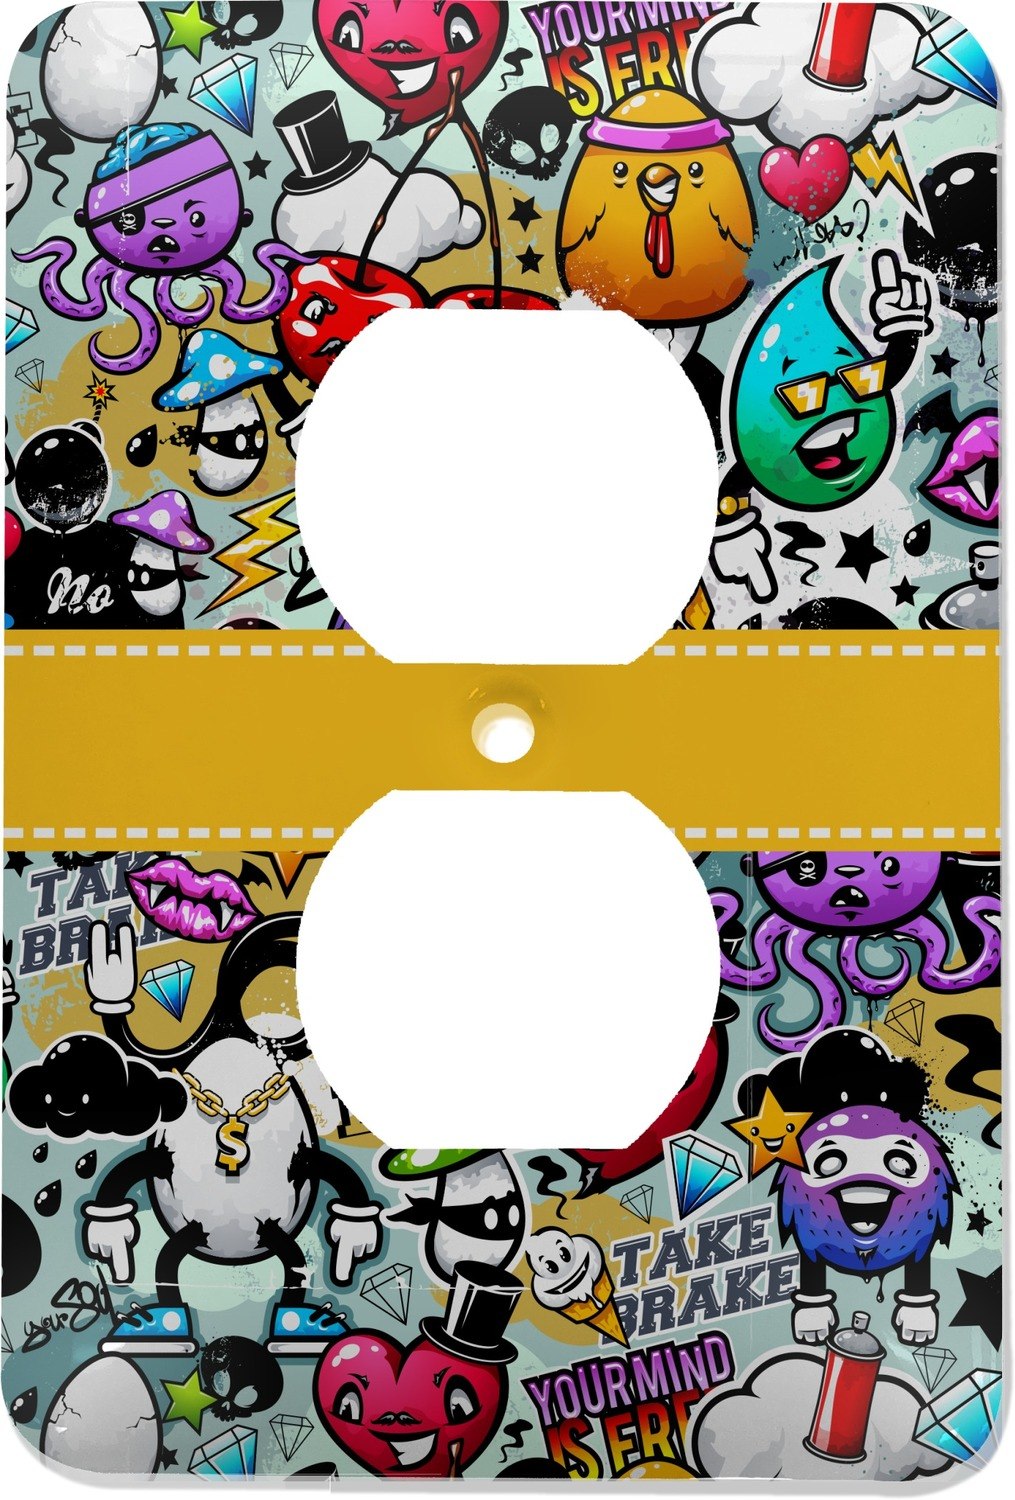 Graffiti Electric Outlet Plate (Personalized) - YouCustomizeIt